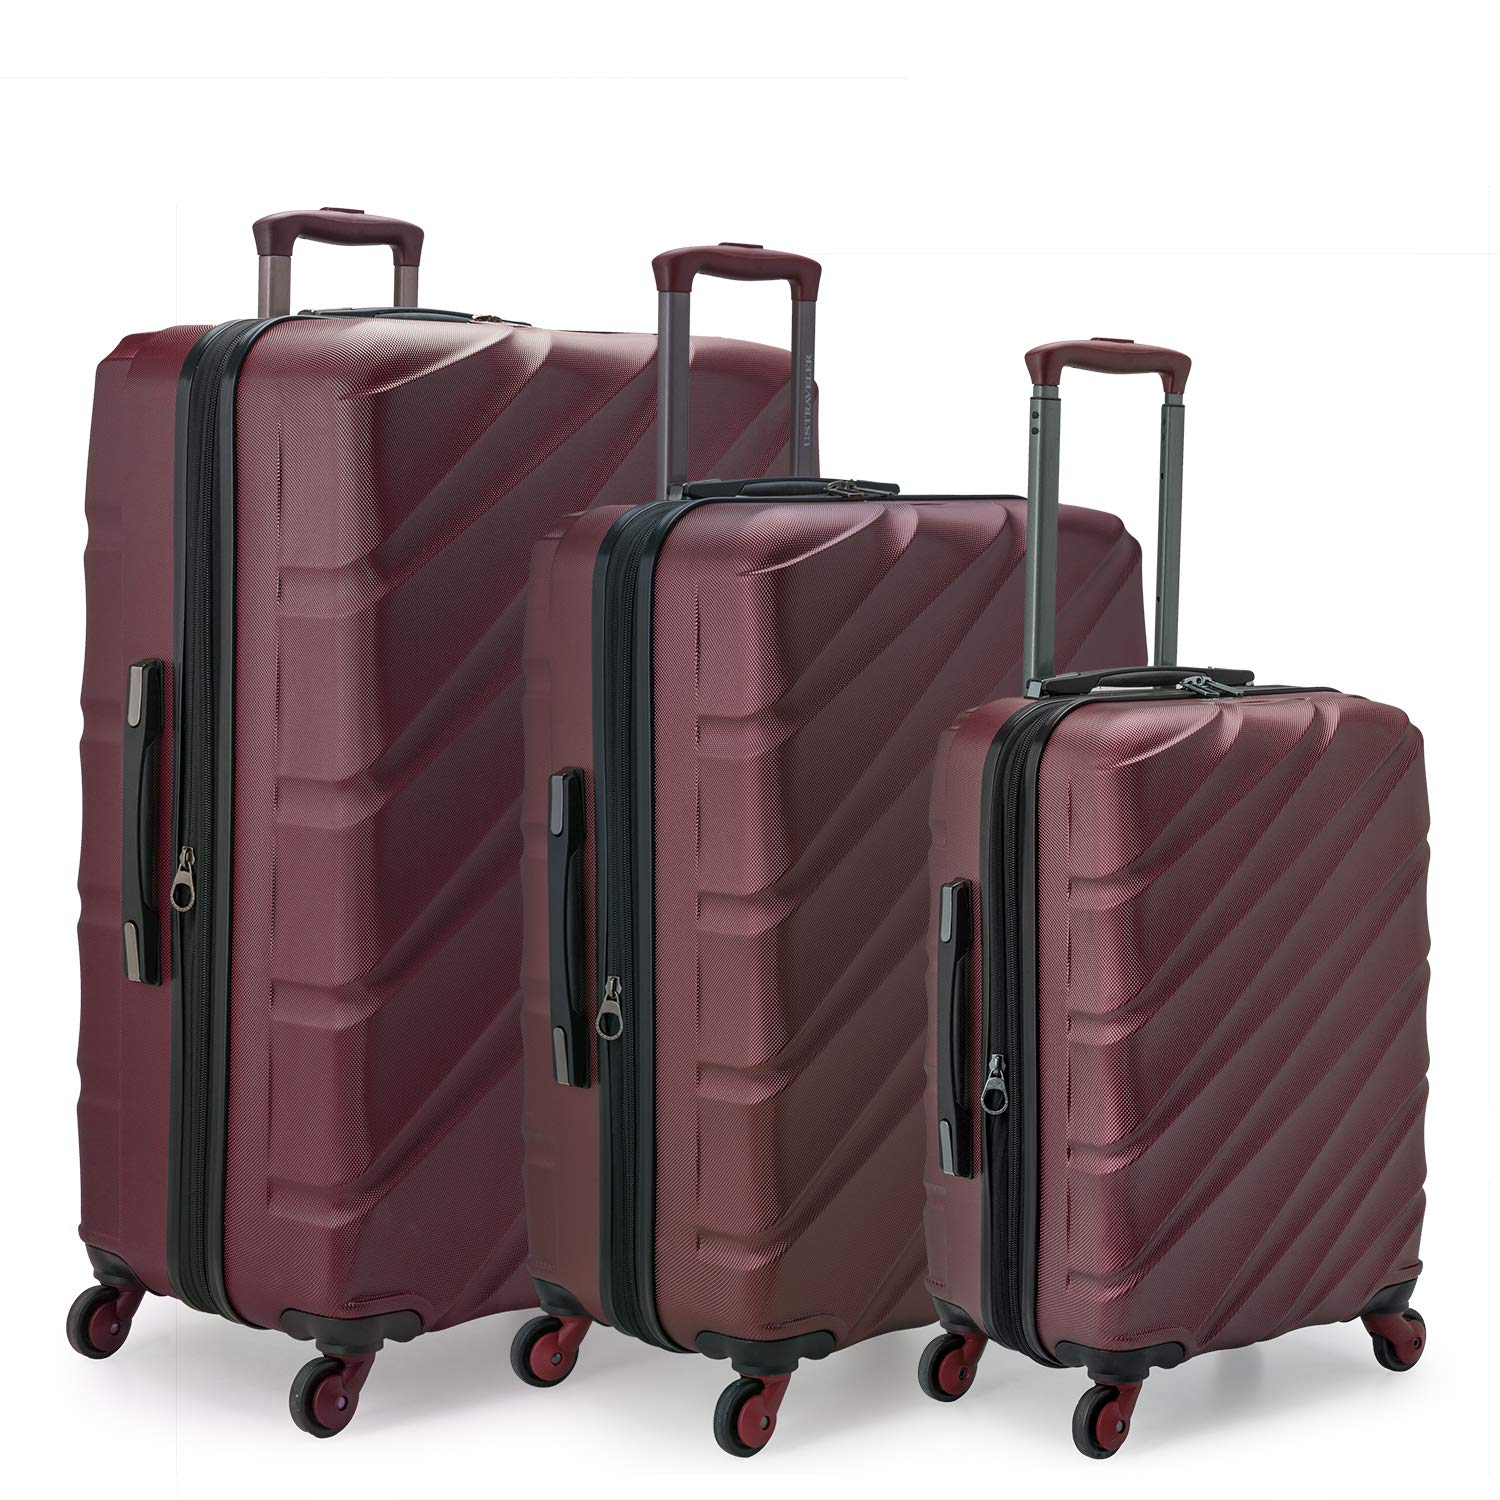 939fdfd92 Amazon.com | Travelers Choice Gilmore 3-Piece Expandable Hardside Luggage  with Push-Button Handle, Burgundy | Luggage